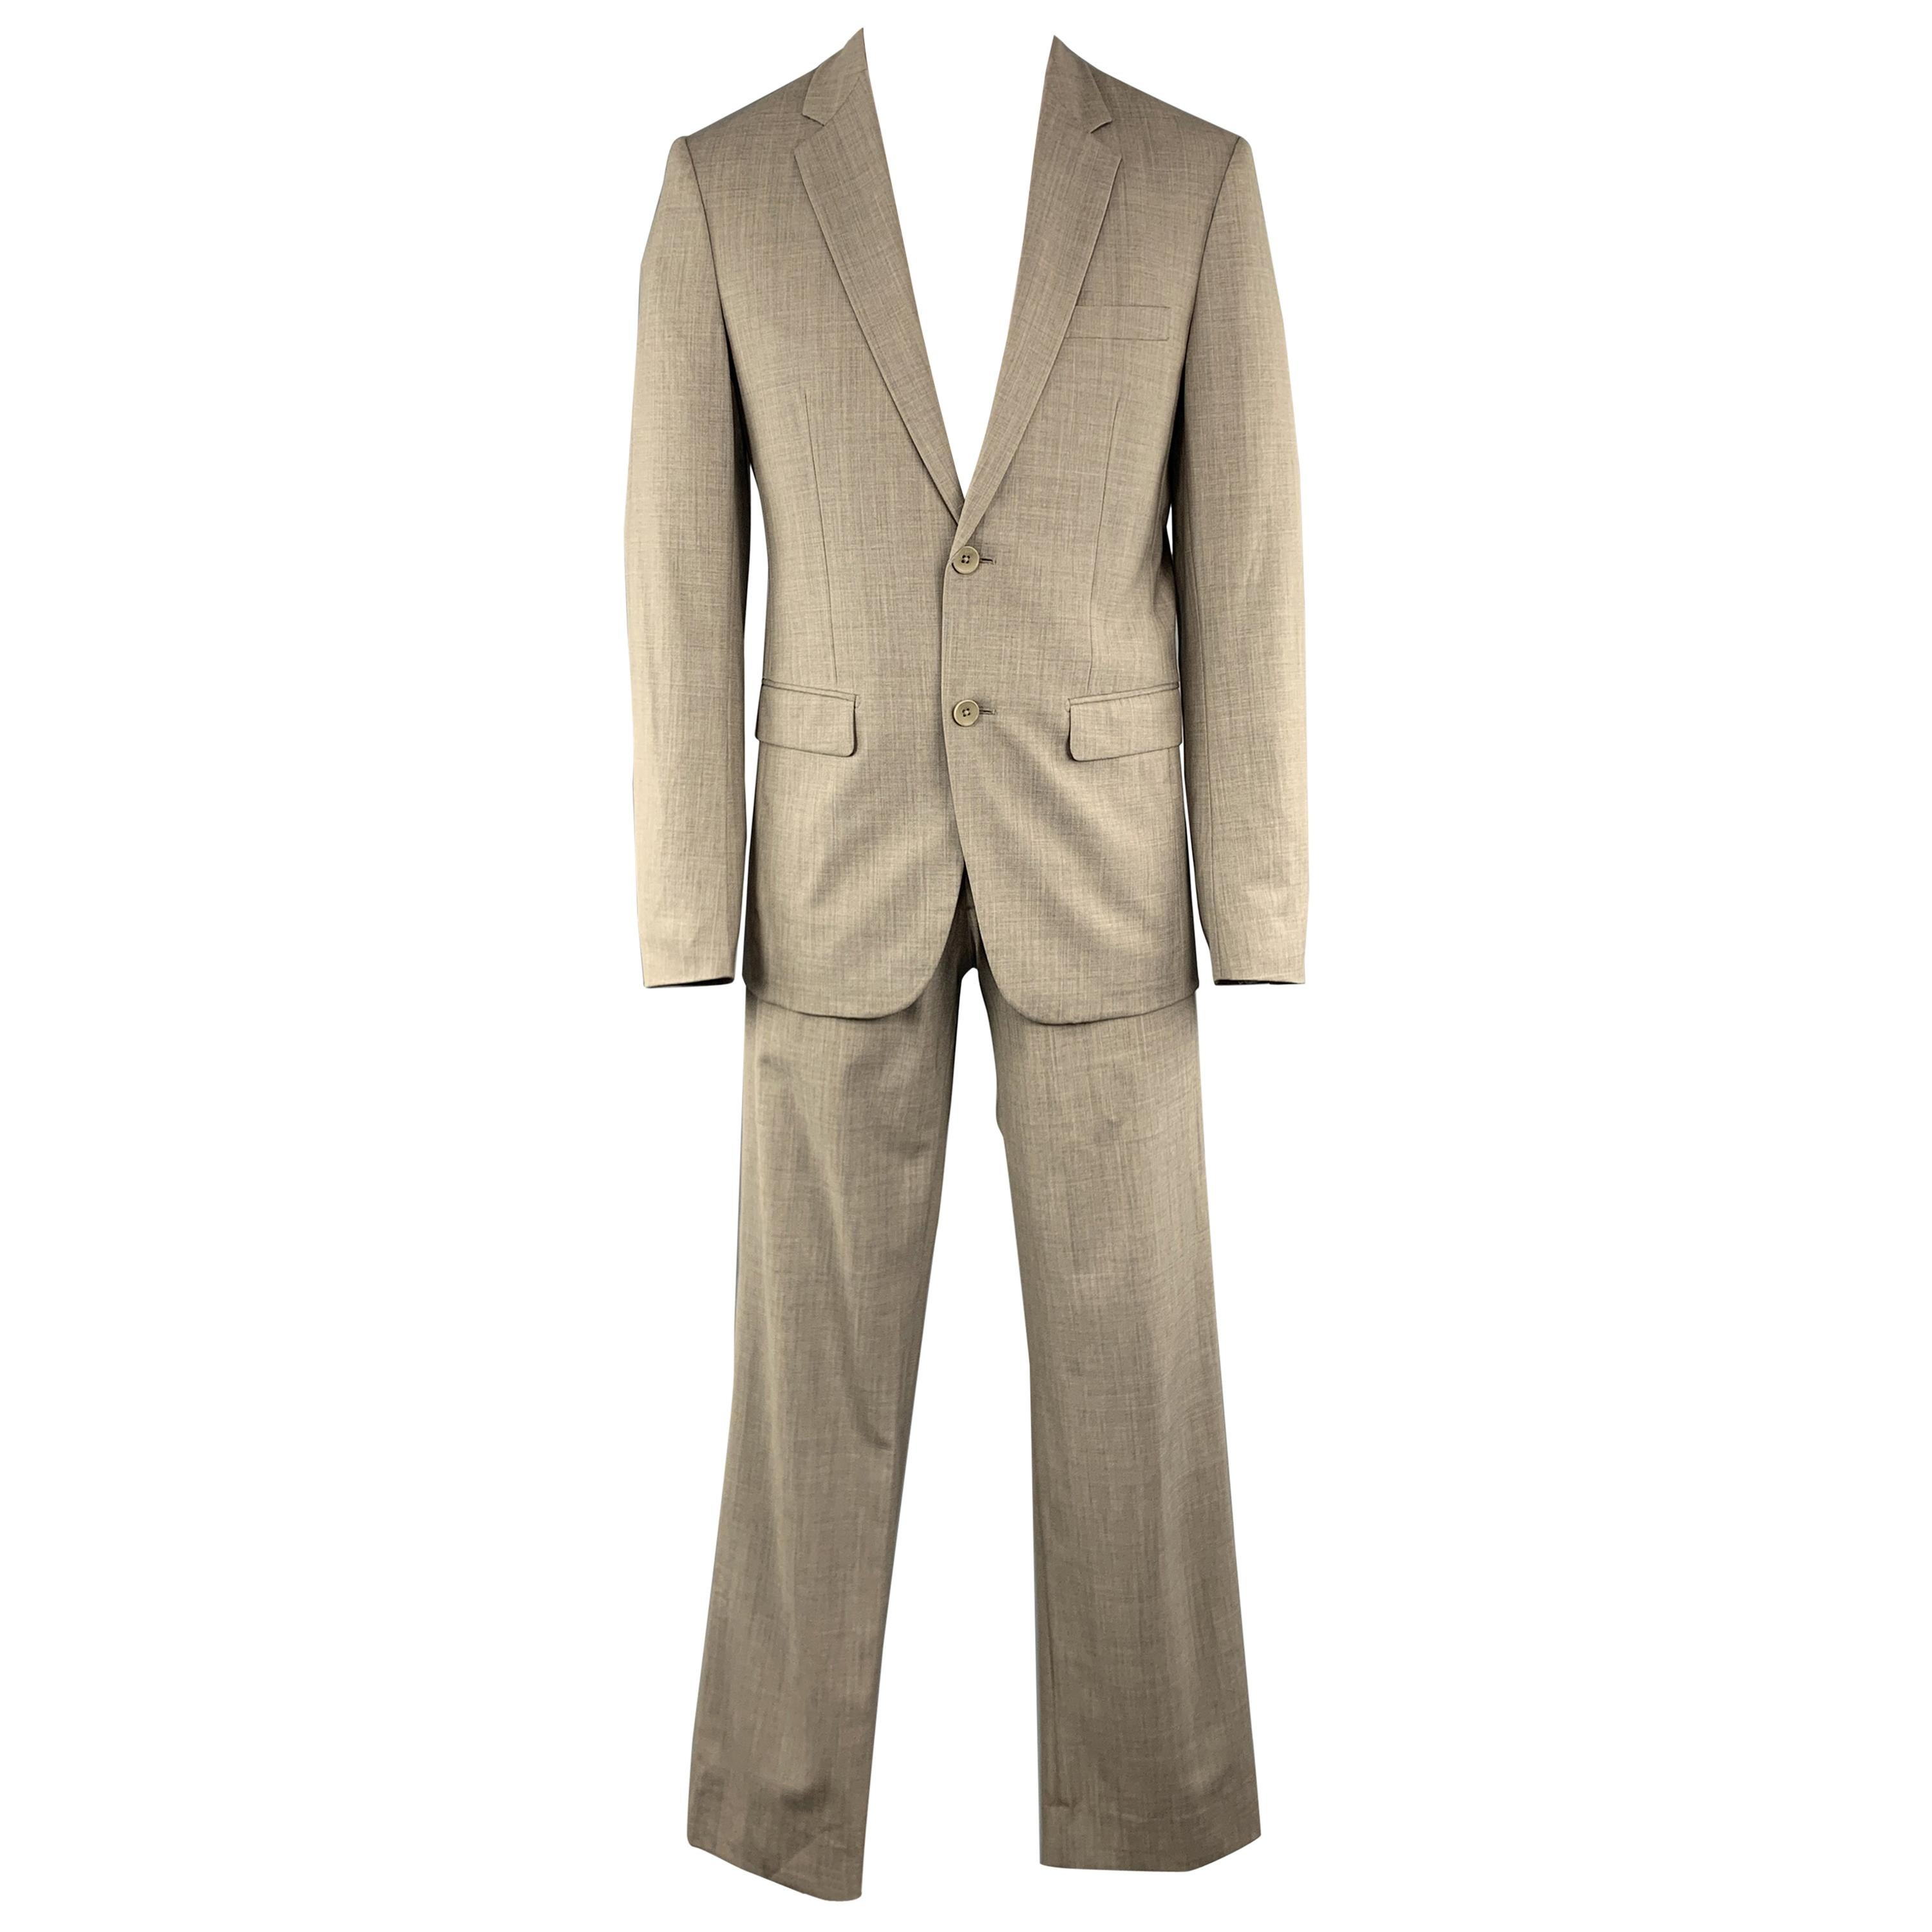 THEORY Size 38 Grey Solid Wool Notch Lapel 30 x 33 Suit